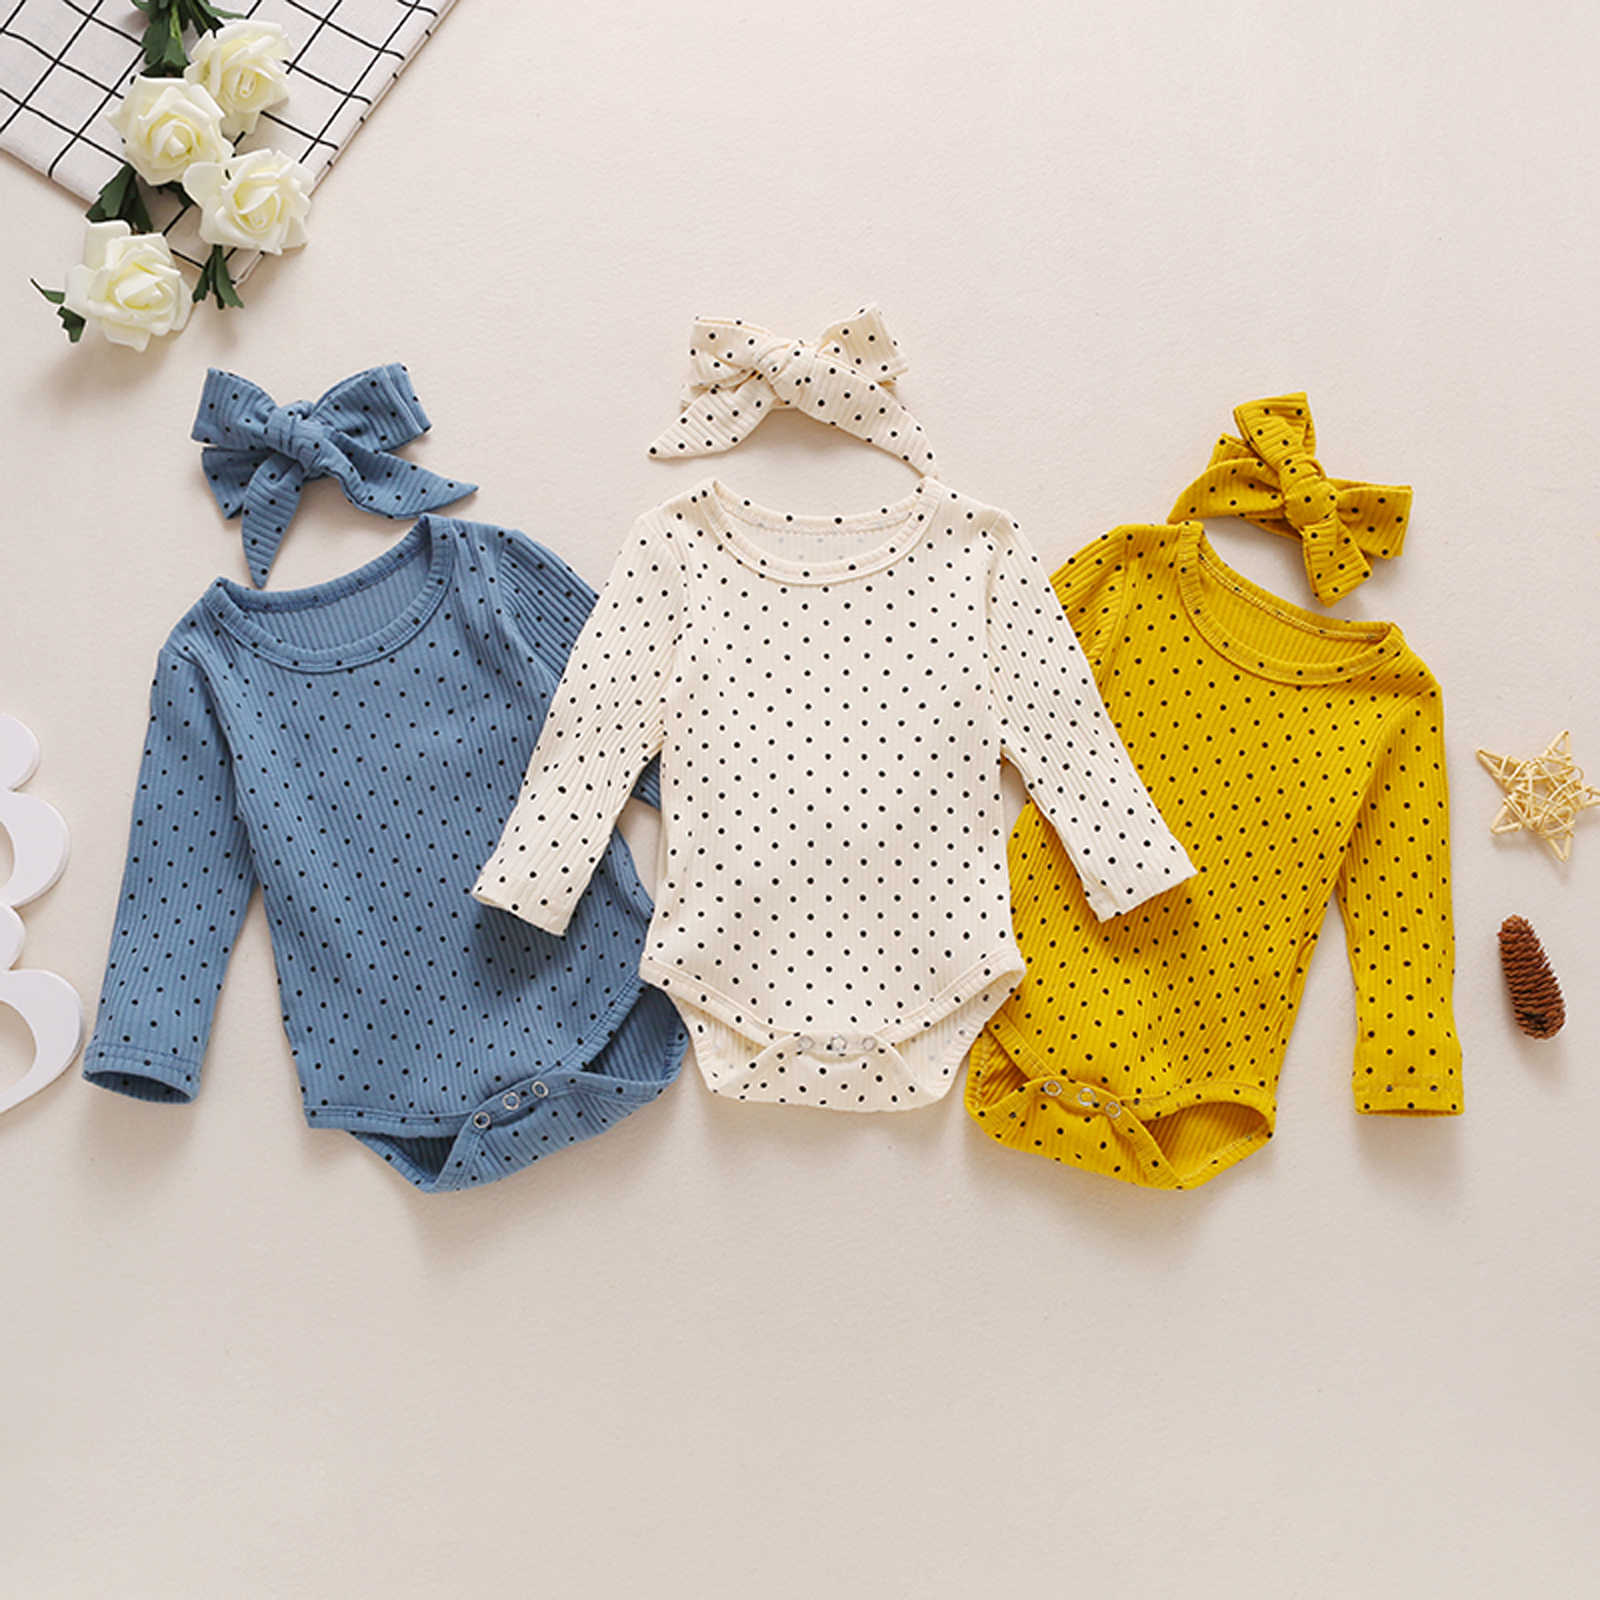 Toddler Baby Girl Spring Autumn Rib Top Bodsuits Headband Long Sleeve Crotch Buttons Home Sleeping Polka Dot Printed (2pcs Suit)